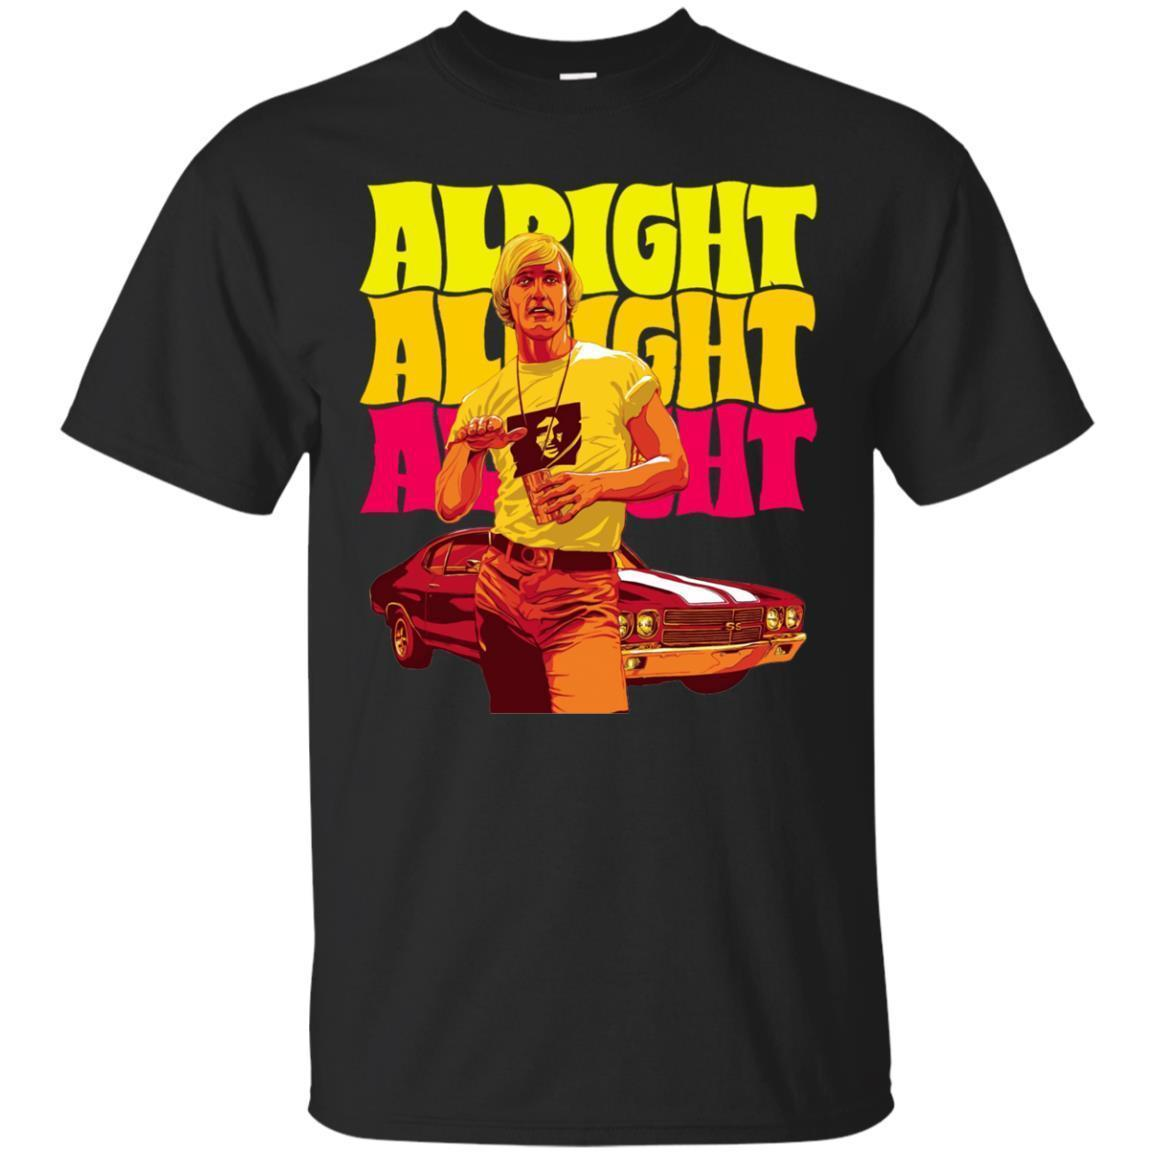 Order Dazed And Confused Alright Alright Alright Shirt